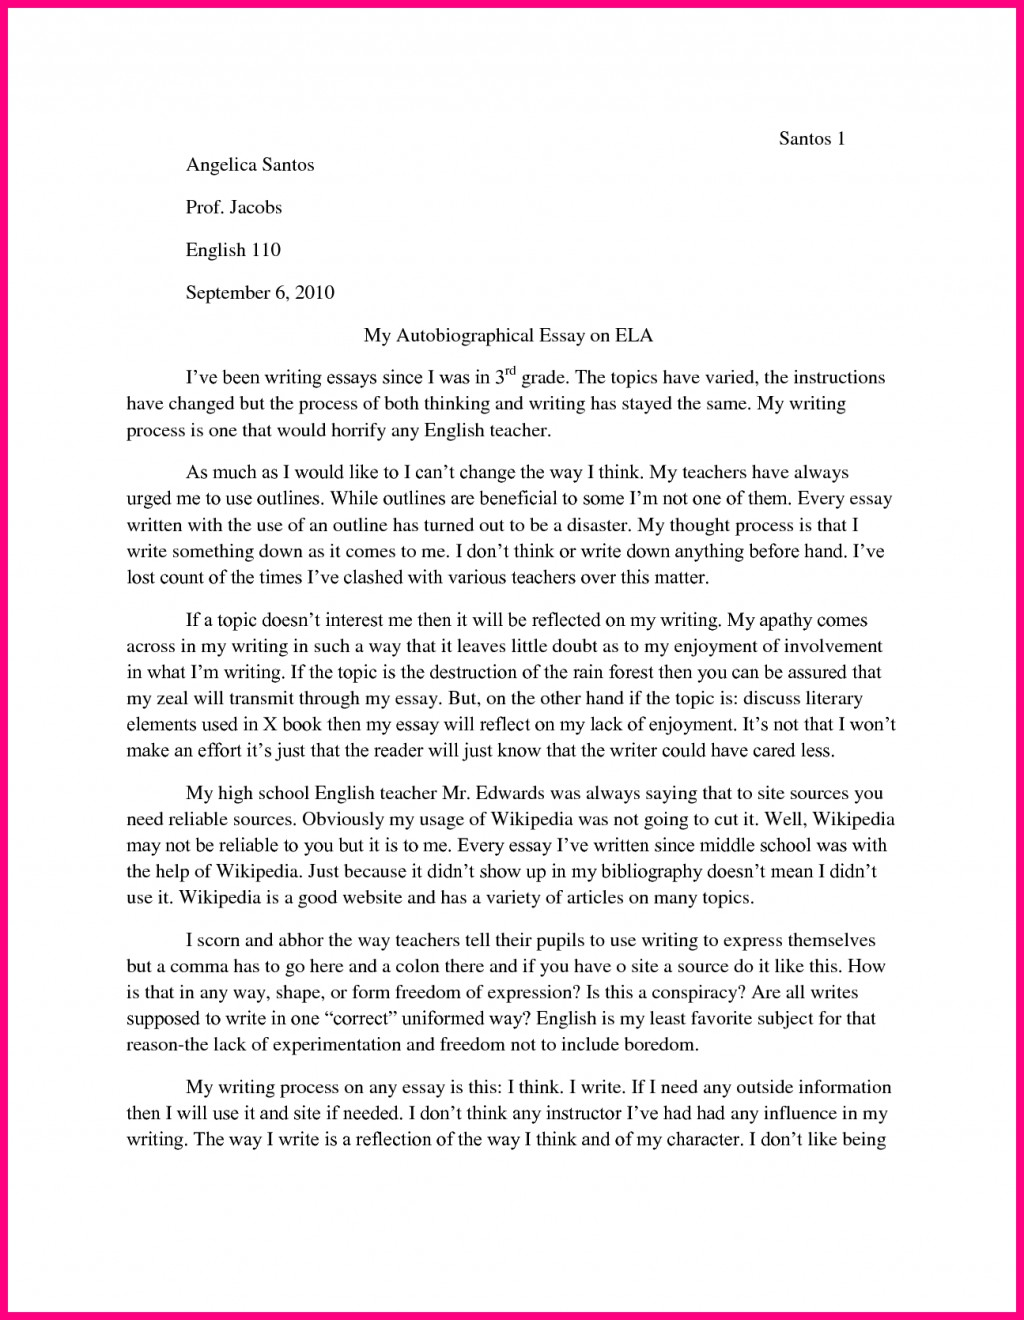 010 Childhood Essay Example My Memories Outline Docoments Ojazlink On L Outstanding 150 Words Ideas Examples Large